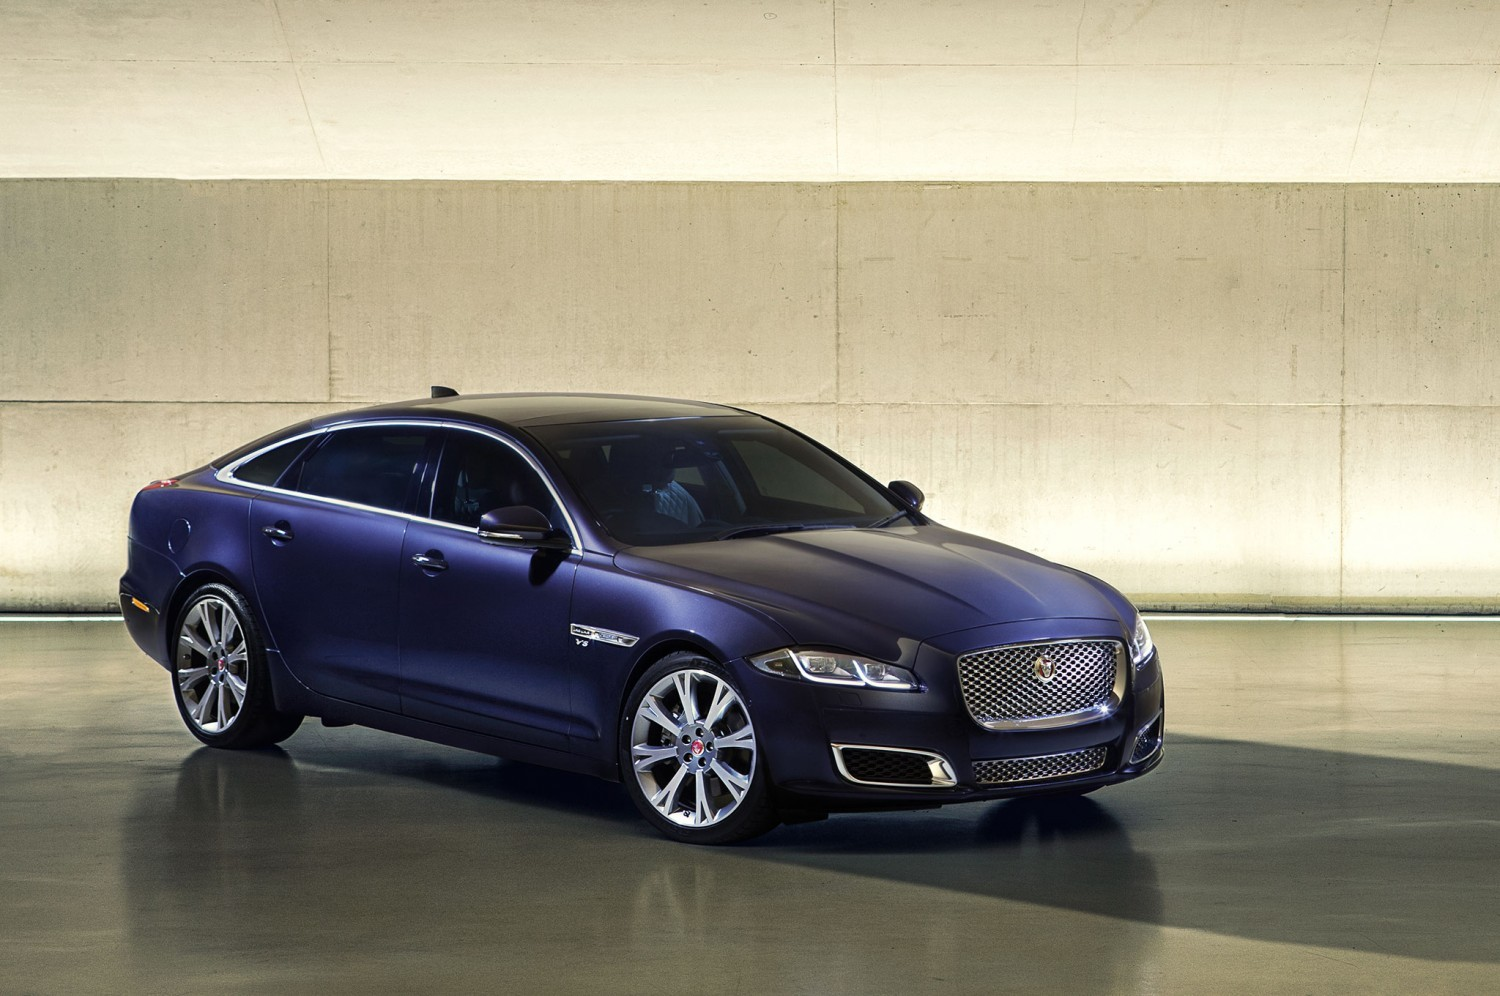 2016-jaguar-xj-autobiography-front-three-quarter